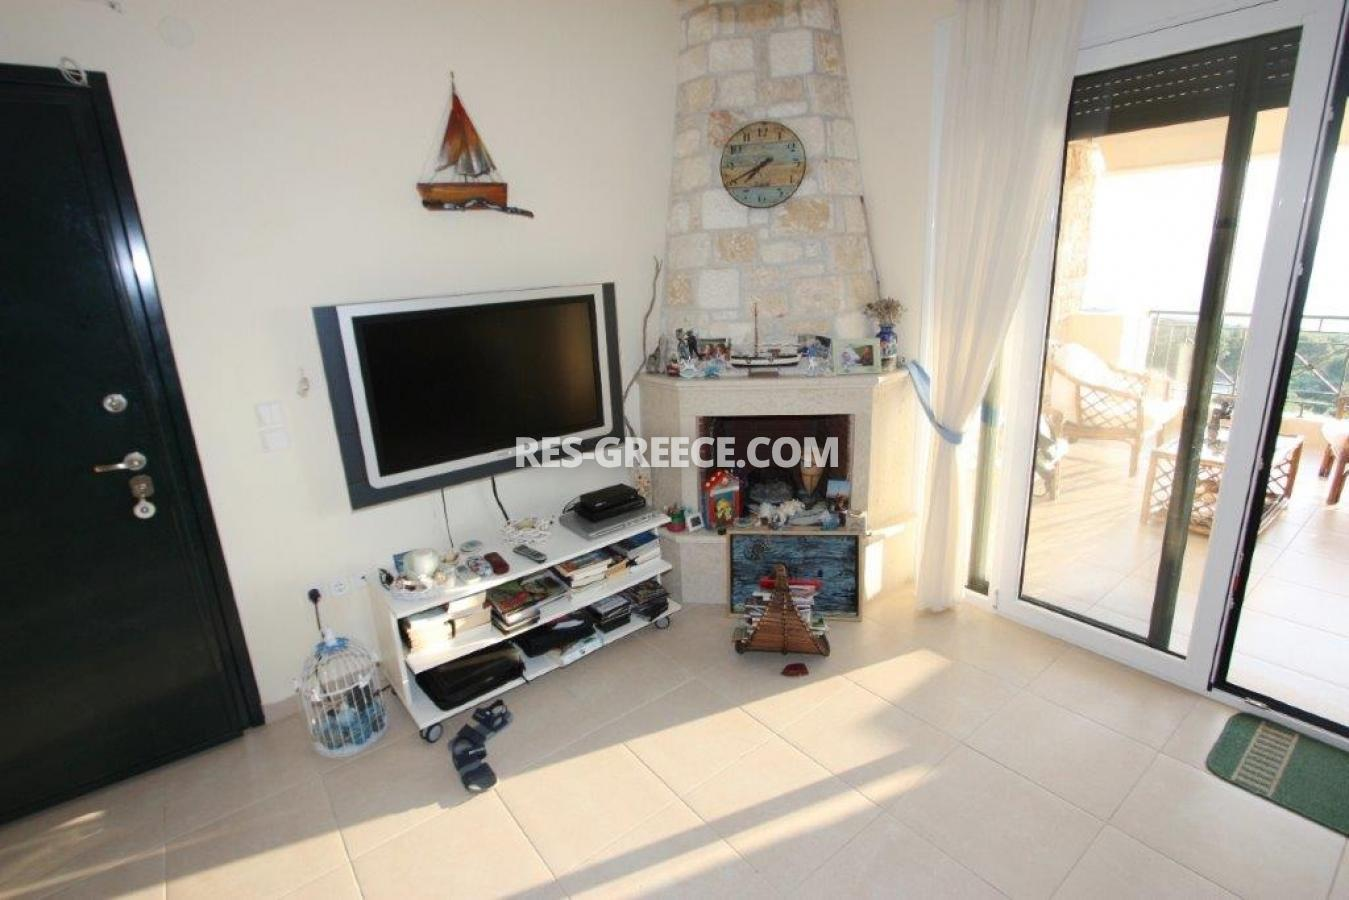 Okialos, Halkidiki-Kassandra, Greece - house for sale in the complex with pool and panoramic sea view - Photo 4